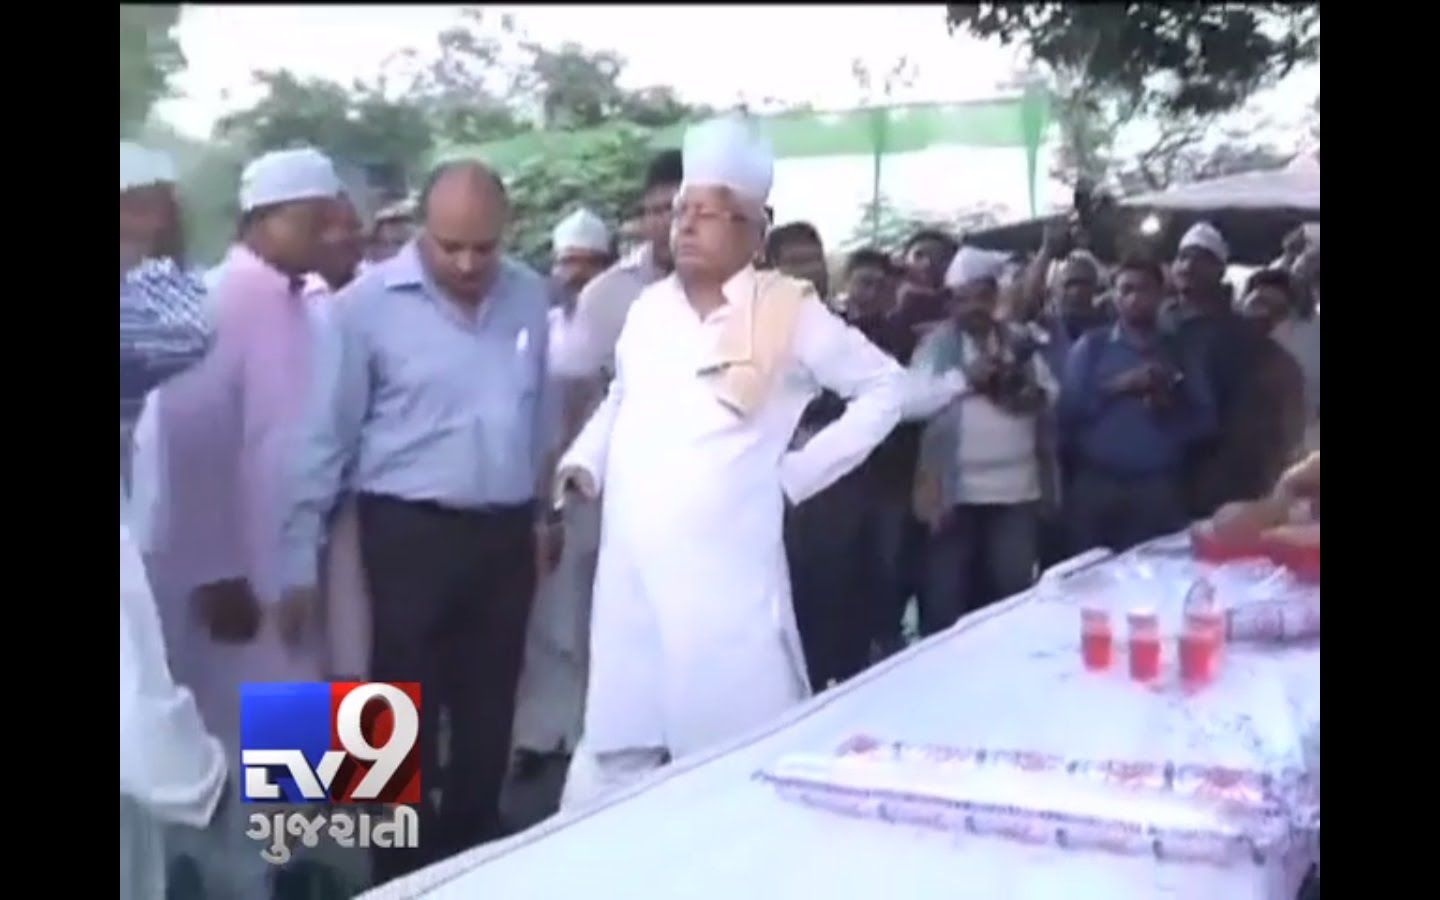 The new found friendship between RJD,JD(U) and Congress was reflected at an Iftar party hosted by RJD president Lalu Prasad in Patna with senior leaders of the three parties participating in it in large numbers.  For more videos go to http://www.youtube.com/gujarattv9  Like us on Facebook at https://www.facebook.com/tv9gujarati Follow us on Twitter at https://twitter.com/Tv9Gujarat Follow us on Dailymotion at http://www.dailymotion.com/GujaratTV9